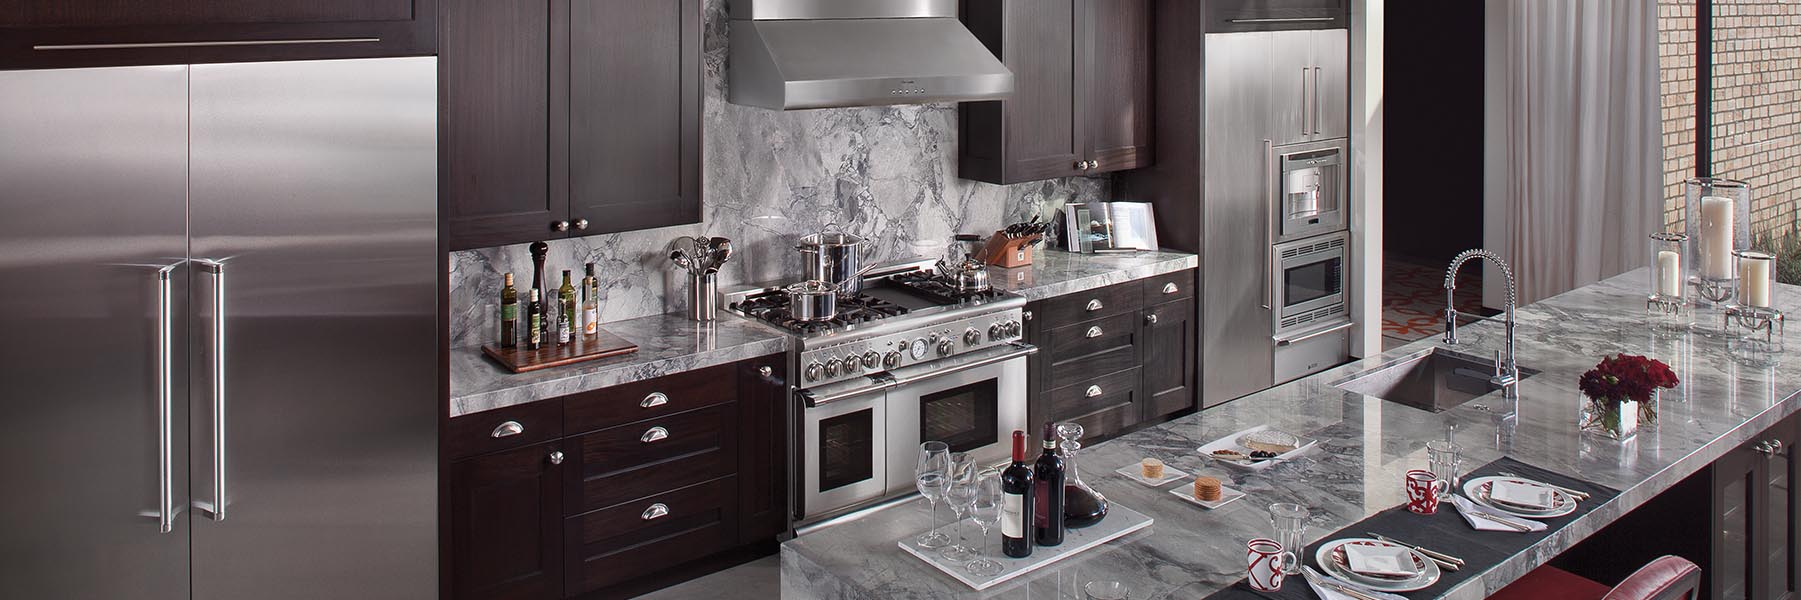 Cooks Brand Kitchen Appliances Thermador Appliance Financing Appliance Service In Pittsburgh